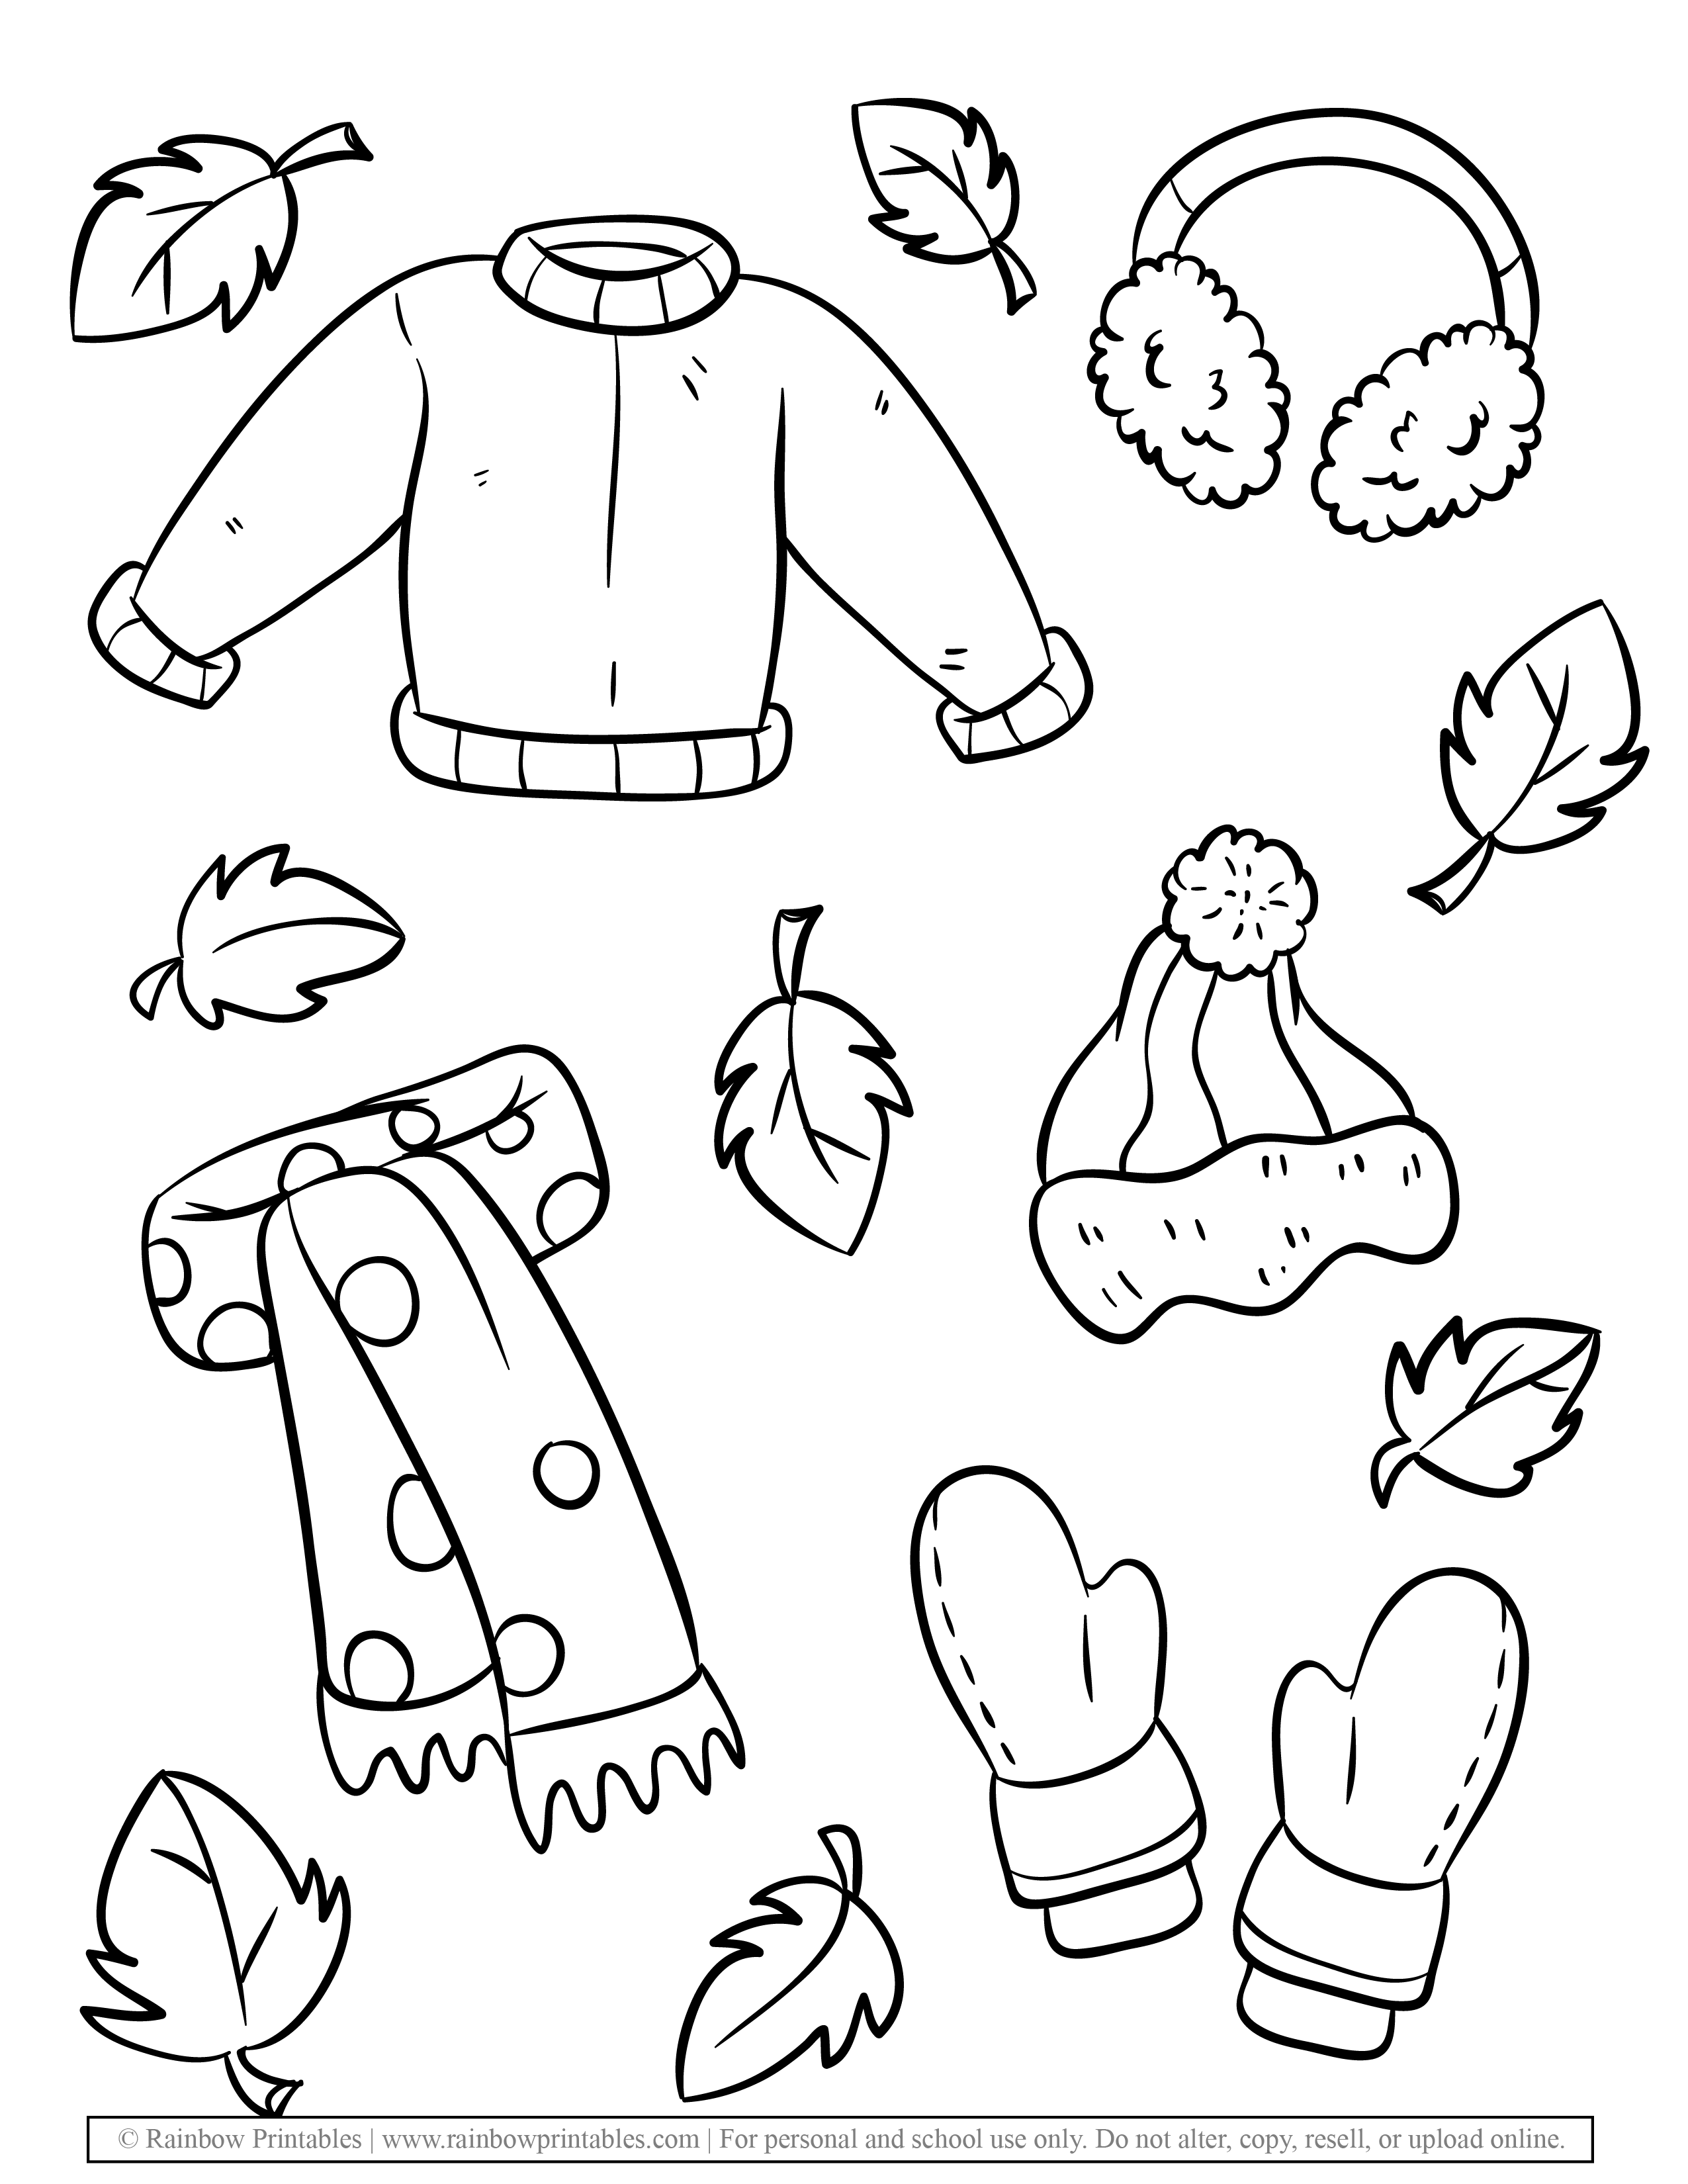 Fall fashion Autumn Clothing Seasonal Coloring Scarf, Mittens, Ear muffs, Puff Ball Hat coloring Page for kids